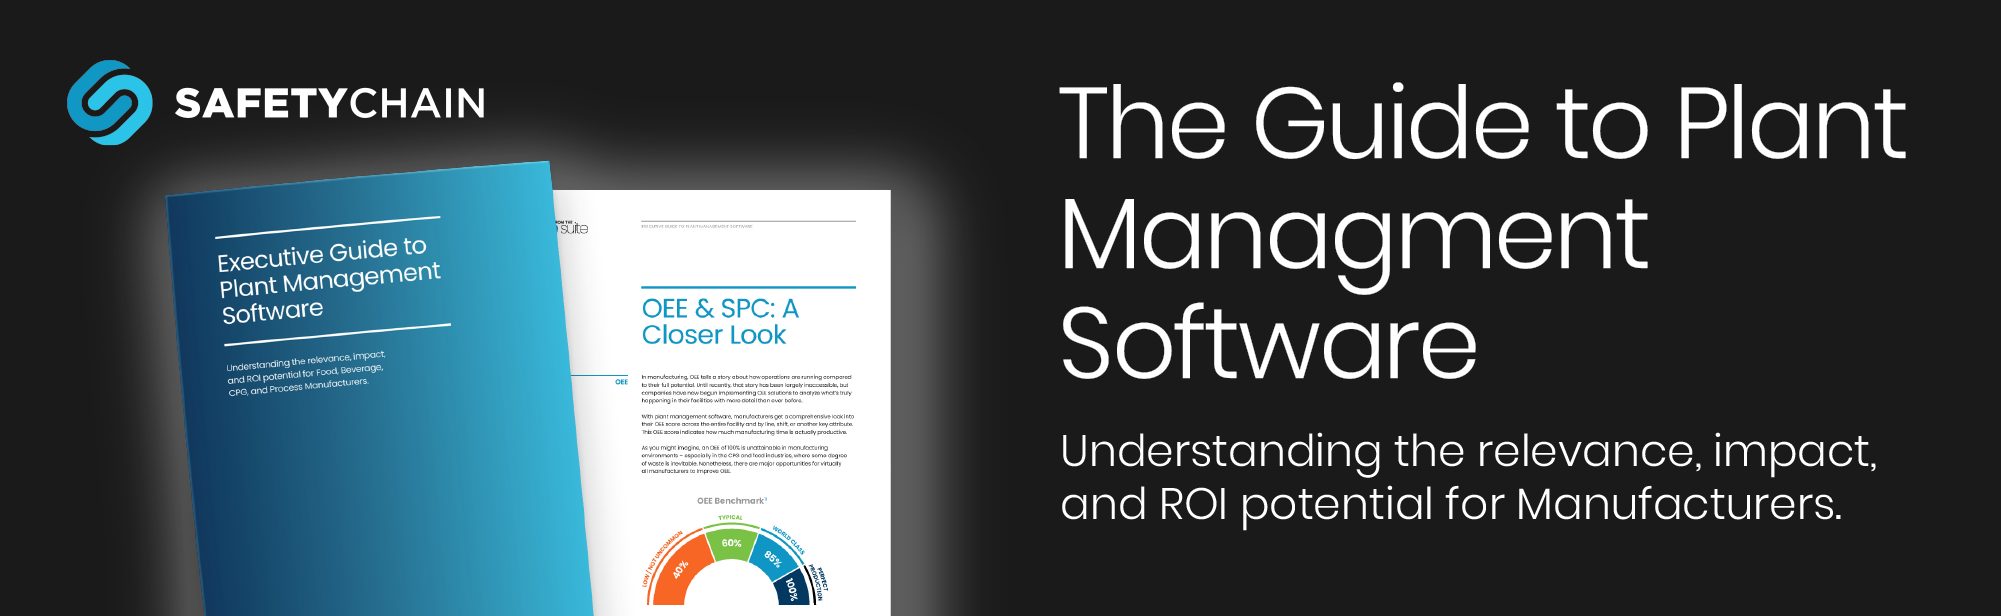 Guide to Plant Management Software